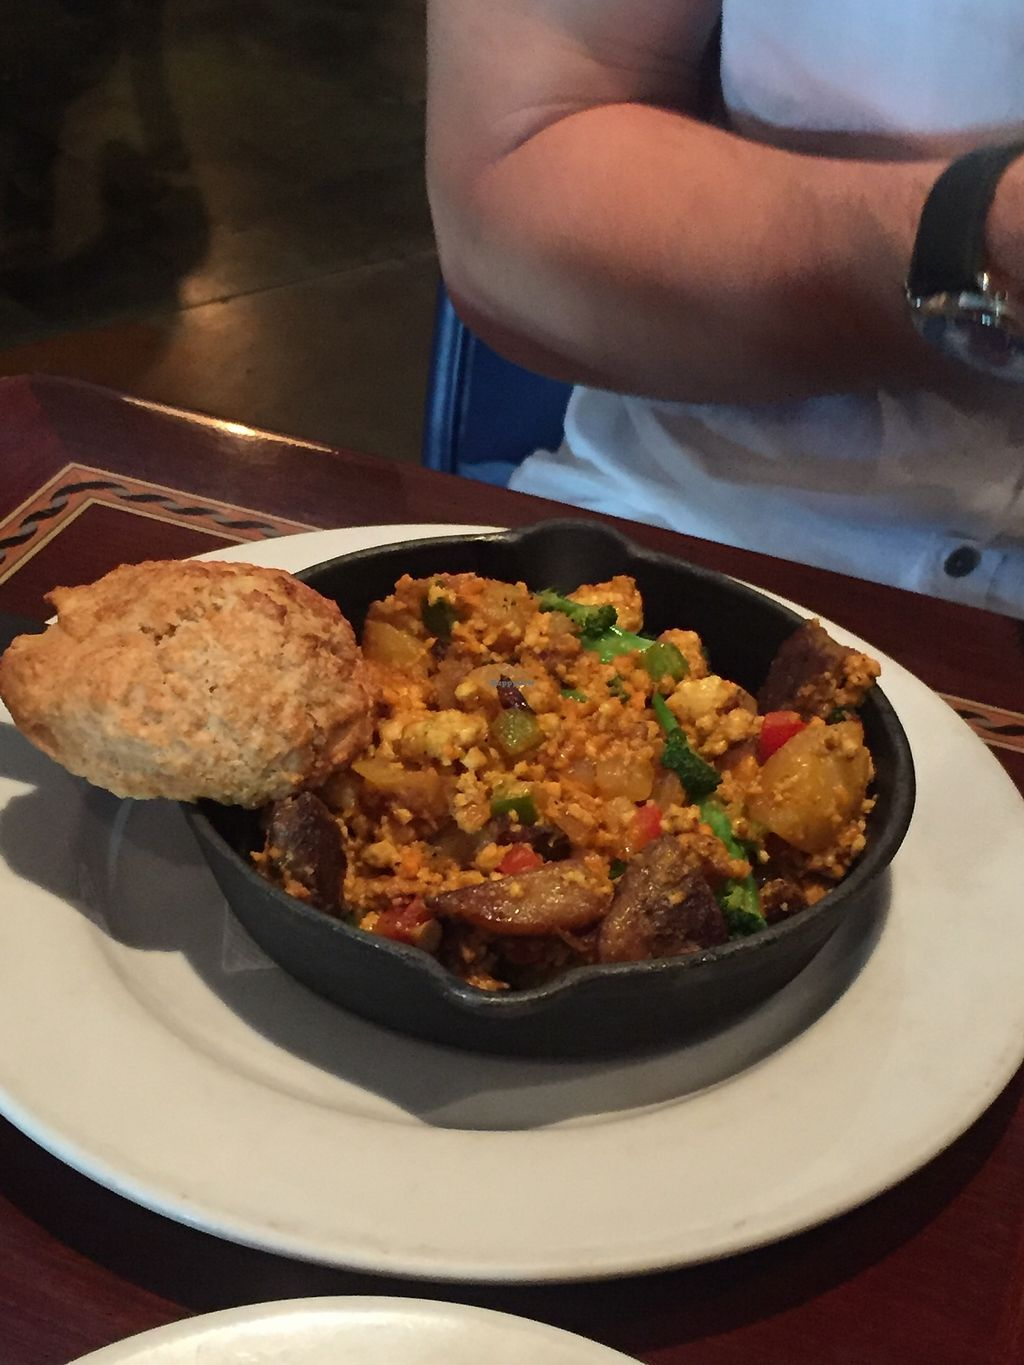 """Photo of Ethos Vegan Kitchen  by <a href=""""/members/profile/KaitlynnGill"""">KaitlynnGill</a> <br/>Skillet scramble  <br/> November 5, 2017  - <a href='/contact/abuse/image/12683/322183'>Report</a>"""